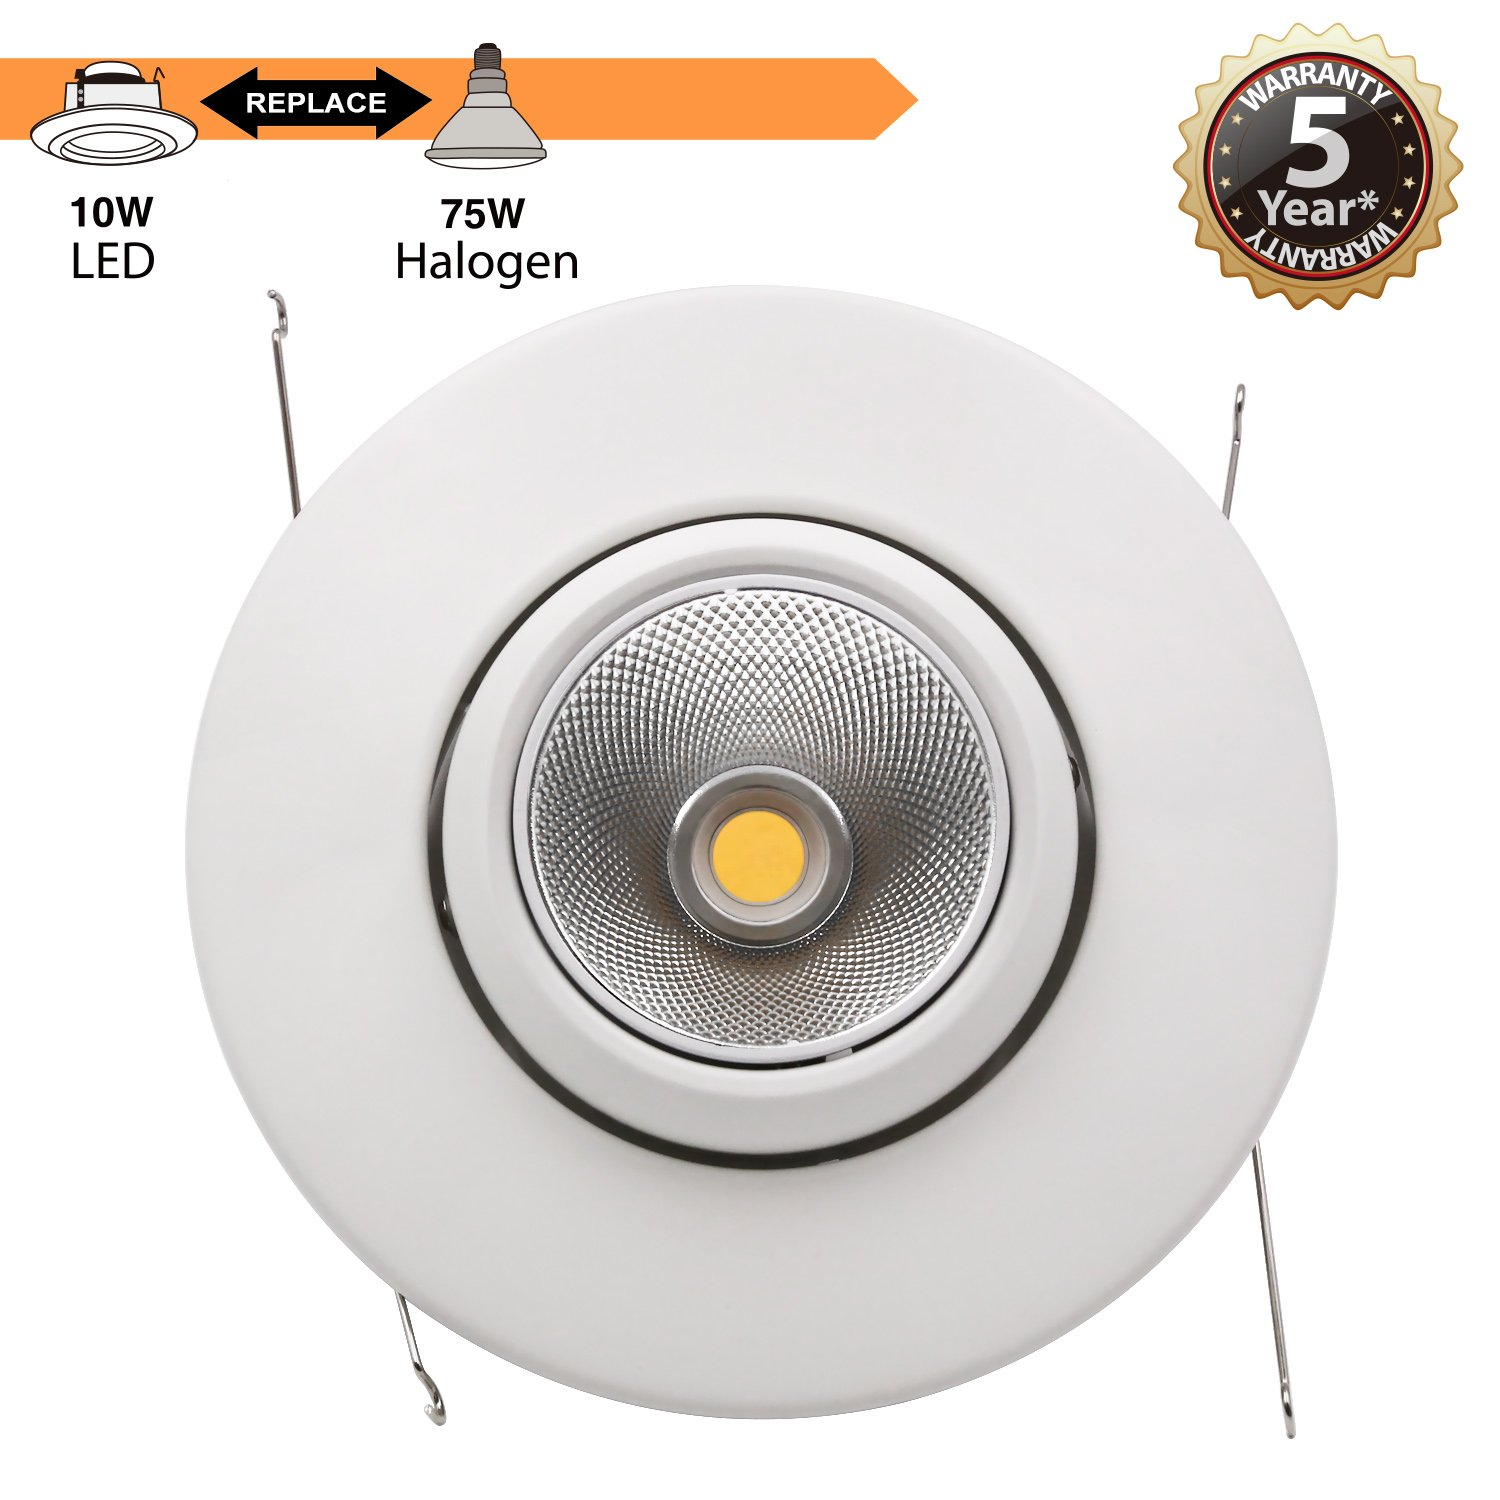 TORCHSTAR High CRI90+ 6inch Dimmable Gimbal Recessed LED Downlight, 10W (75W Equiv.), ENERGY STAR, 5000K Daylight, 950lm, Adjustable LED Retrofit Lighting Fixture, 5 YEARS WARRANTY, Pack of 4 by TORCHSTAR (Image #4)